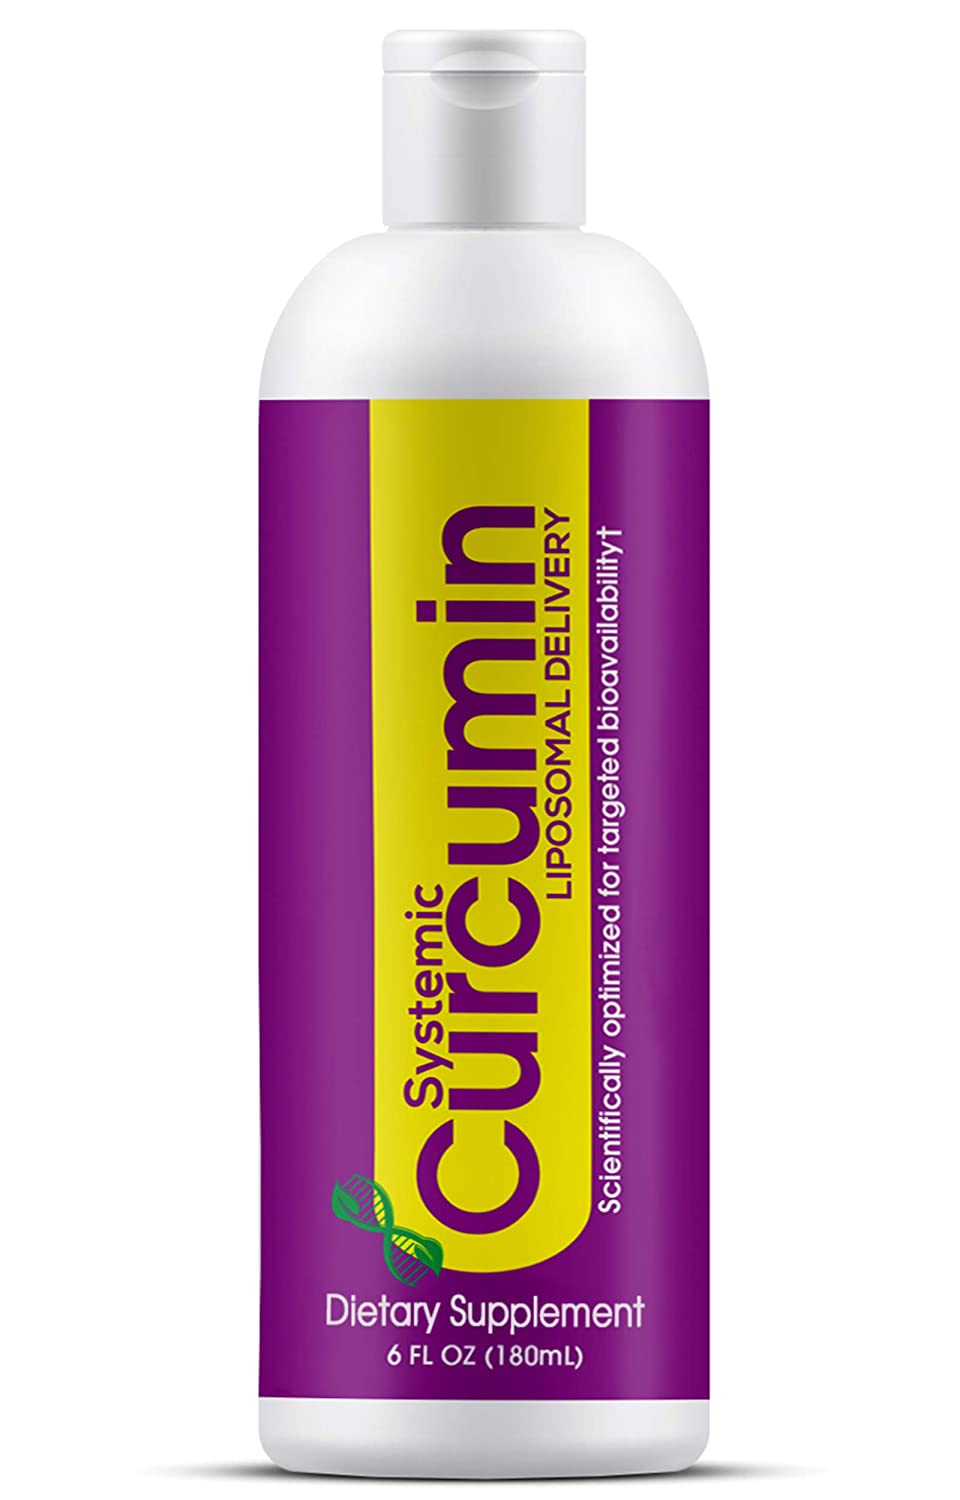 LIPOSOMAL Curcumin* Liquid* Piperine Free* Scientifically Formulated *Targeted Bioavailability